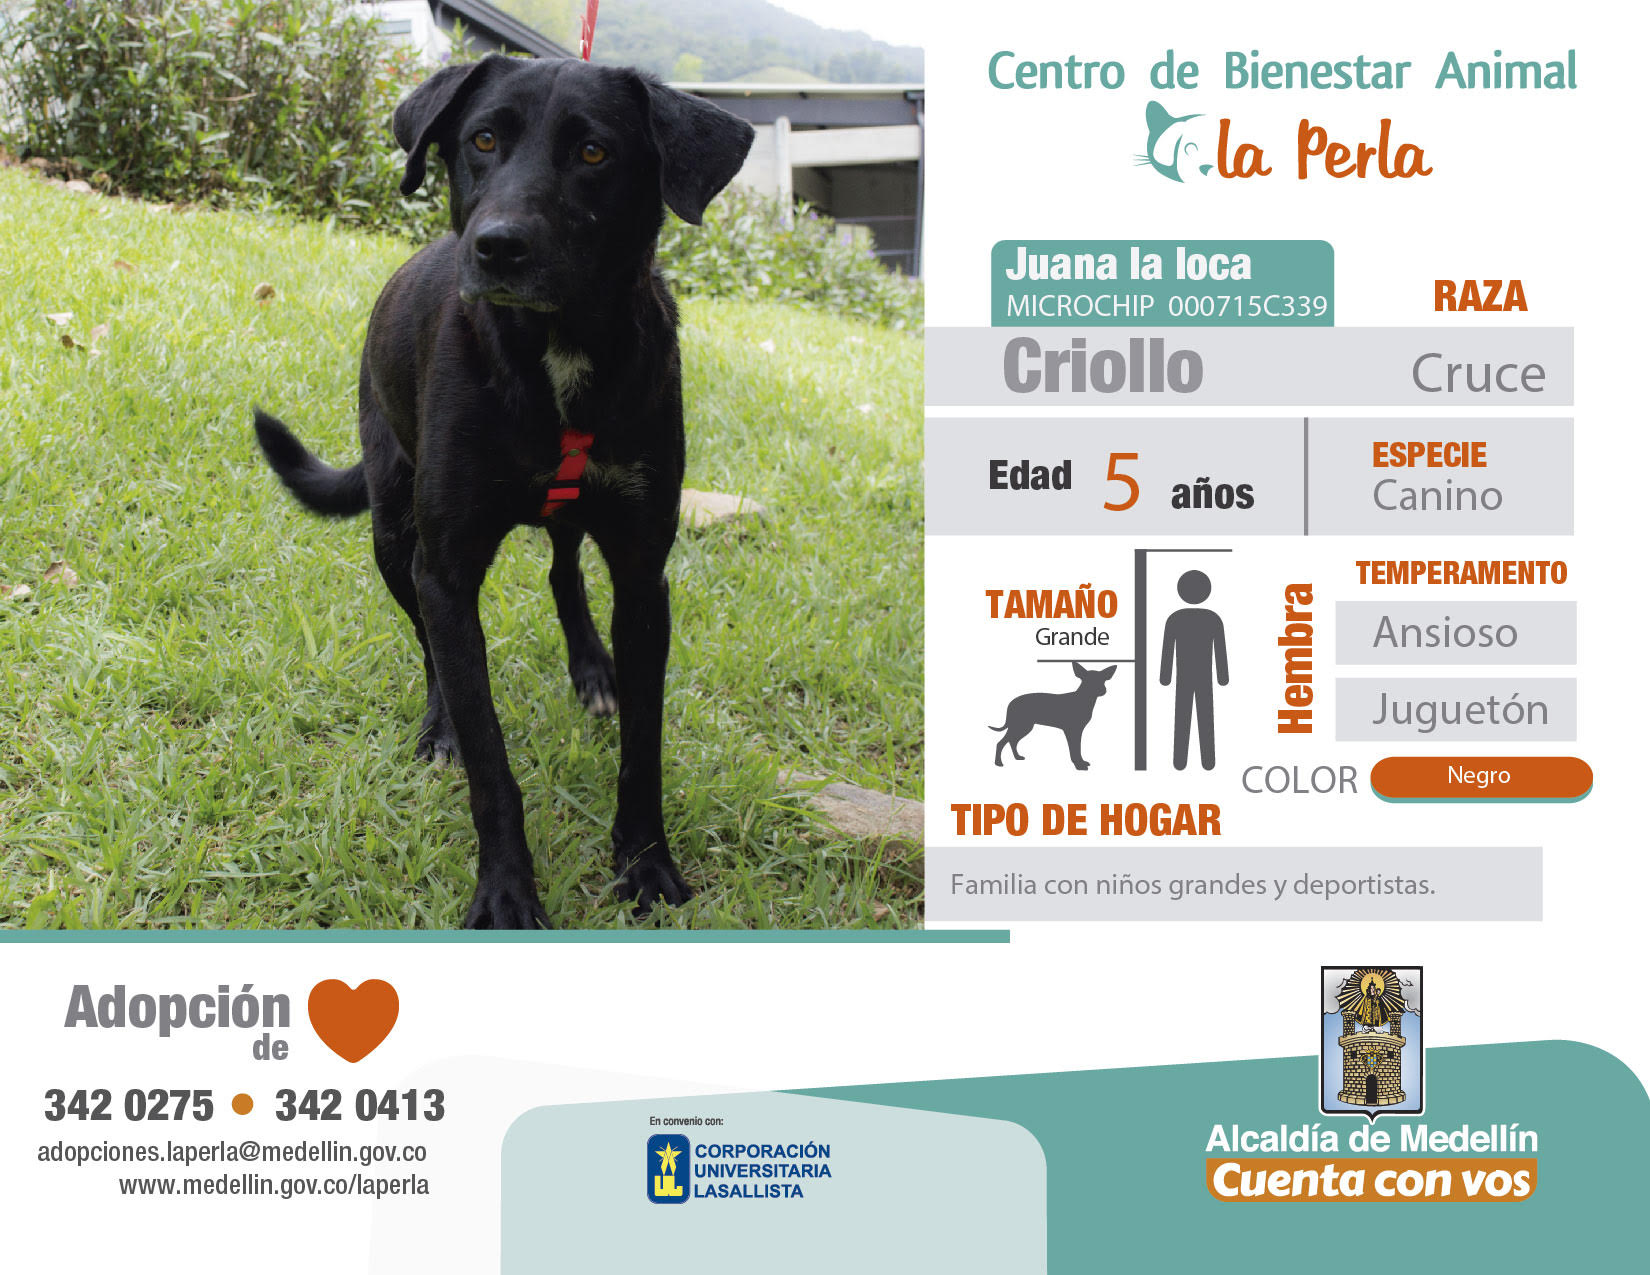 adopciones-la-perla-animal-la-revista